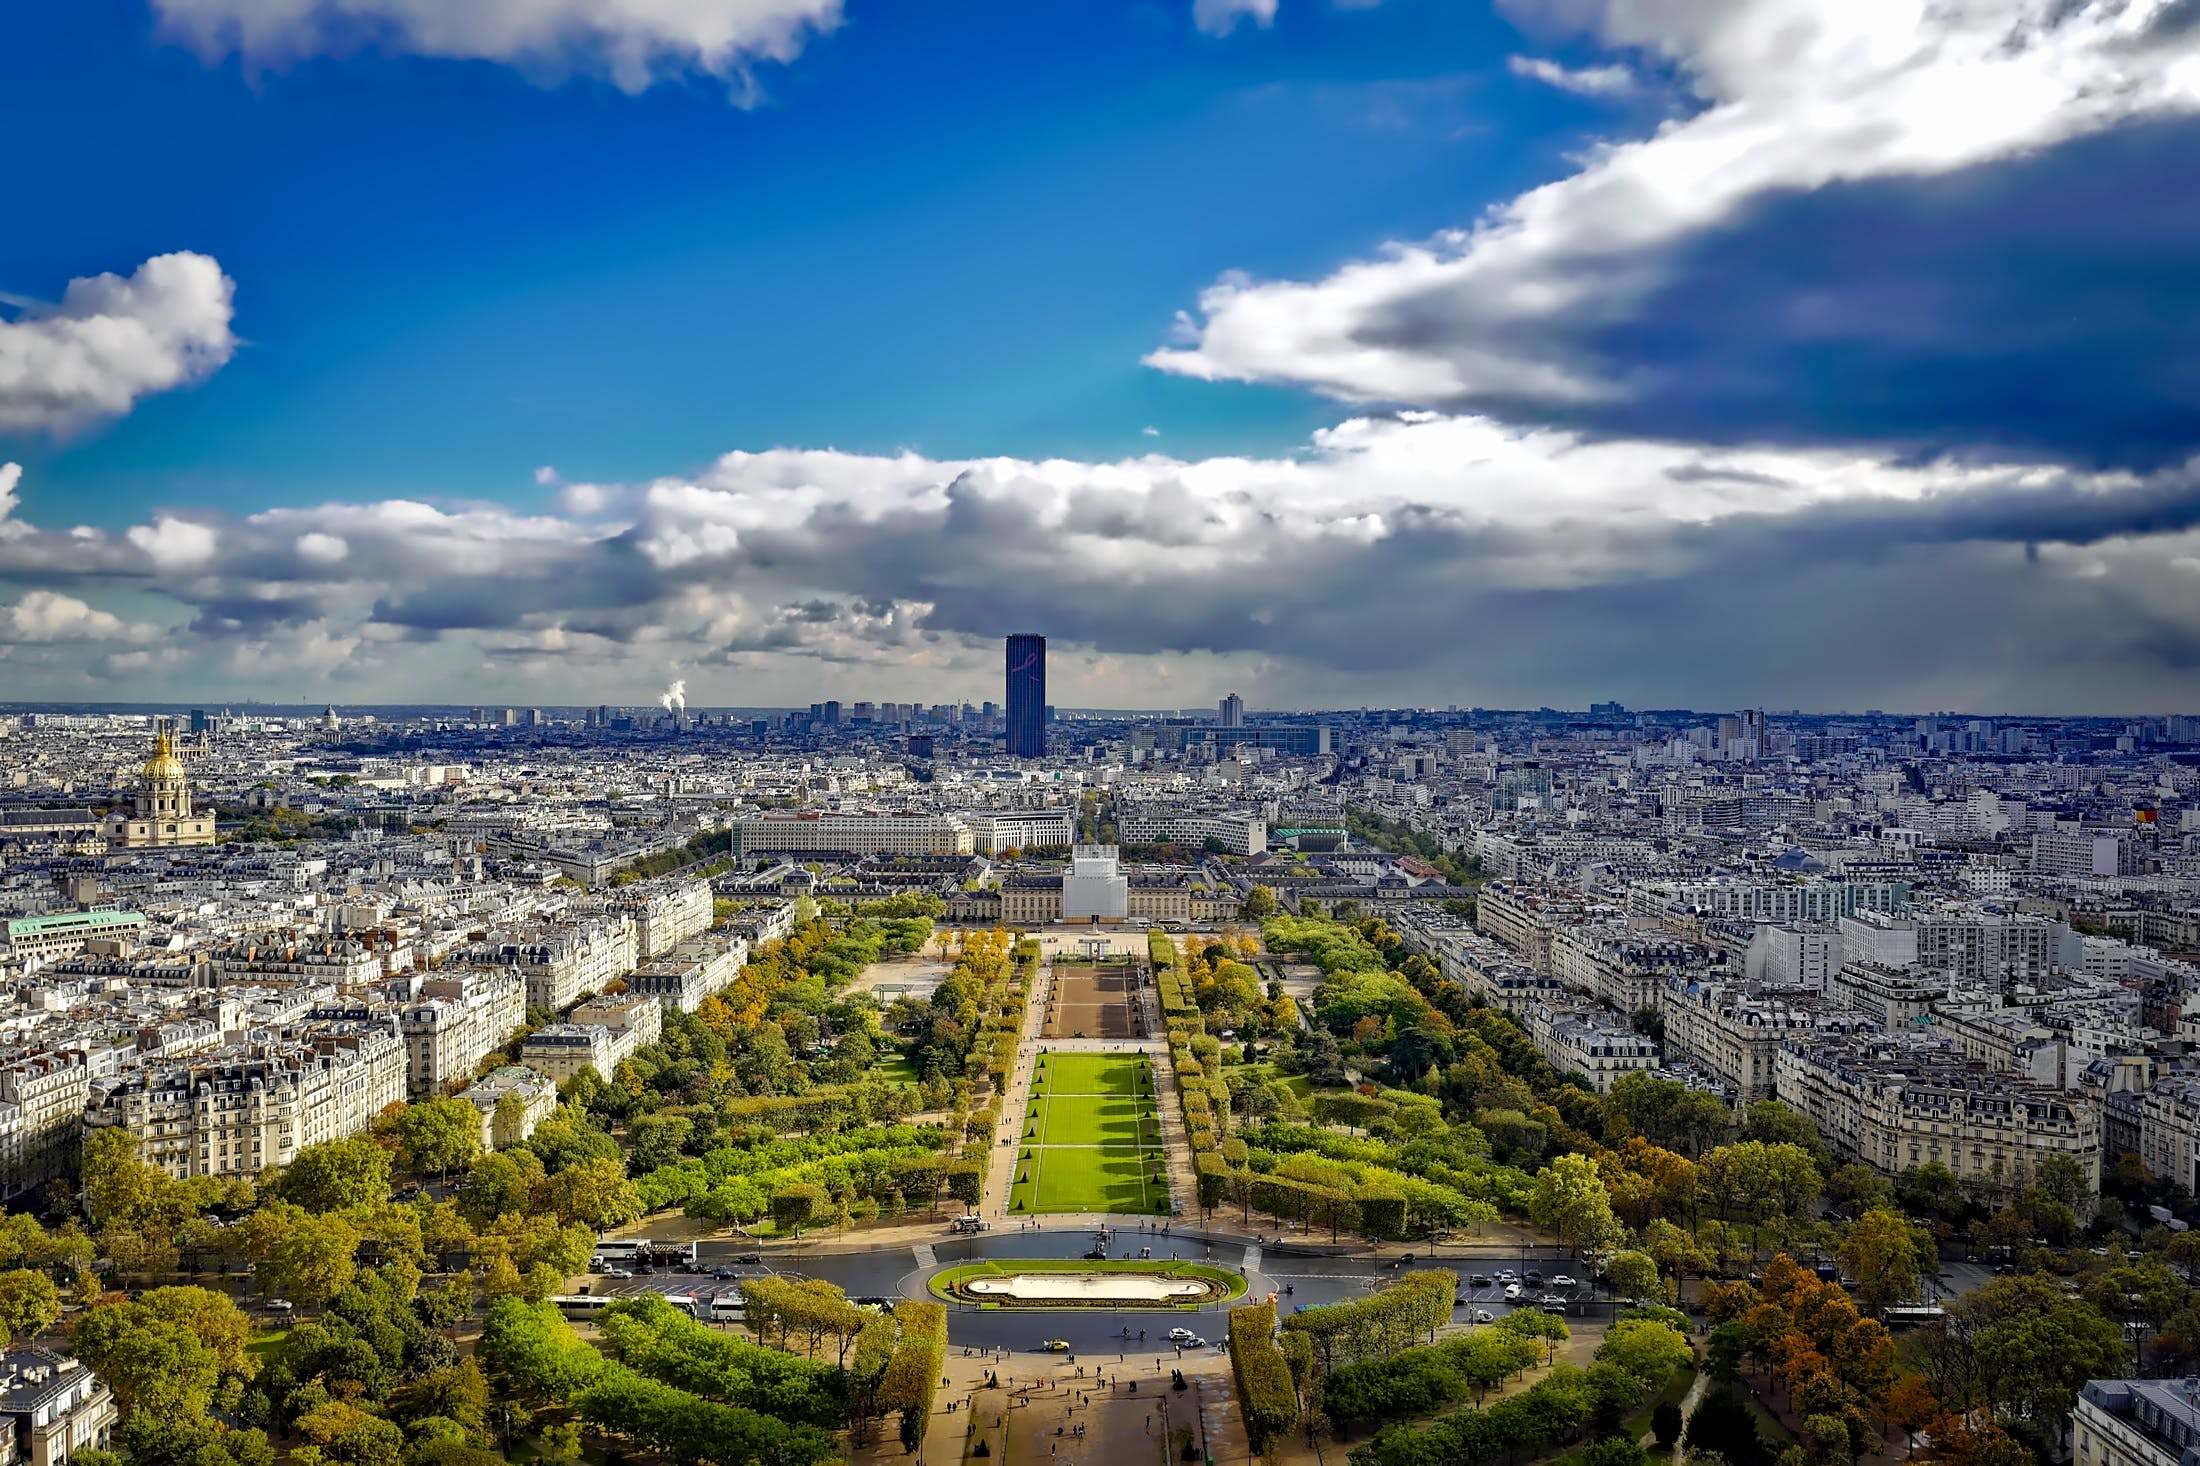 aerial view, architecture, attractions